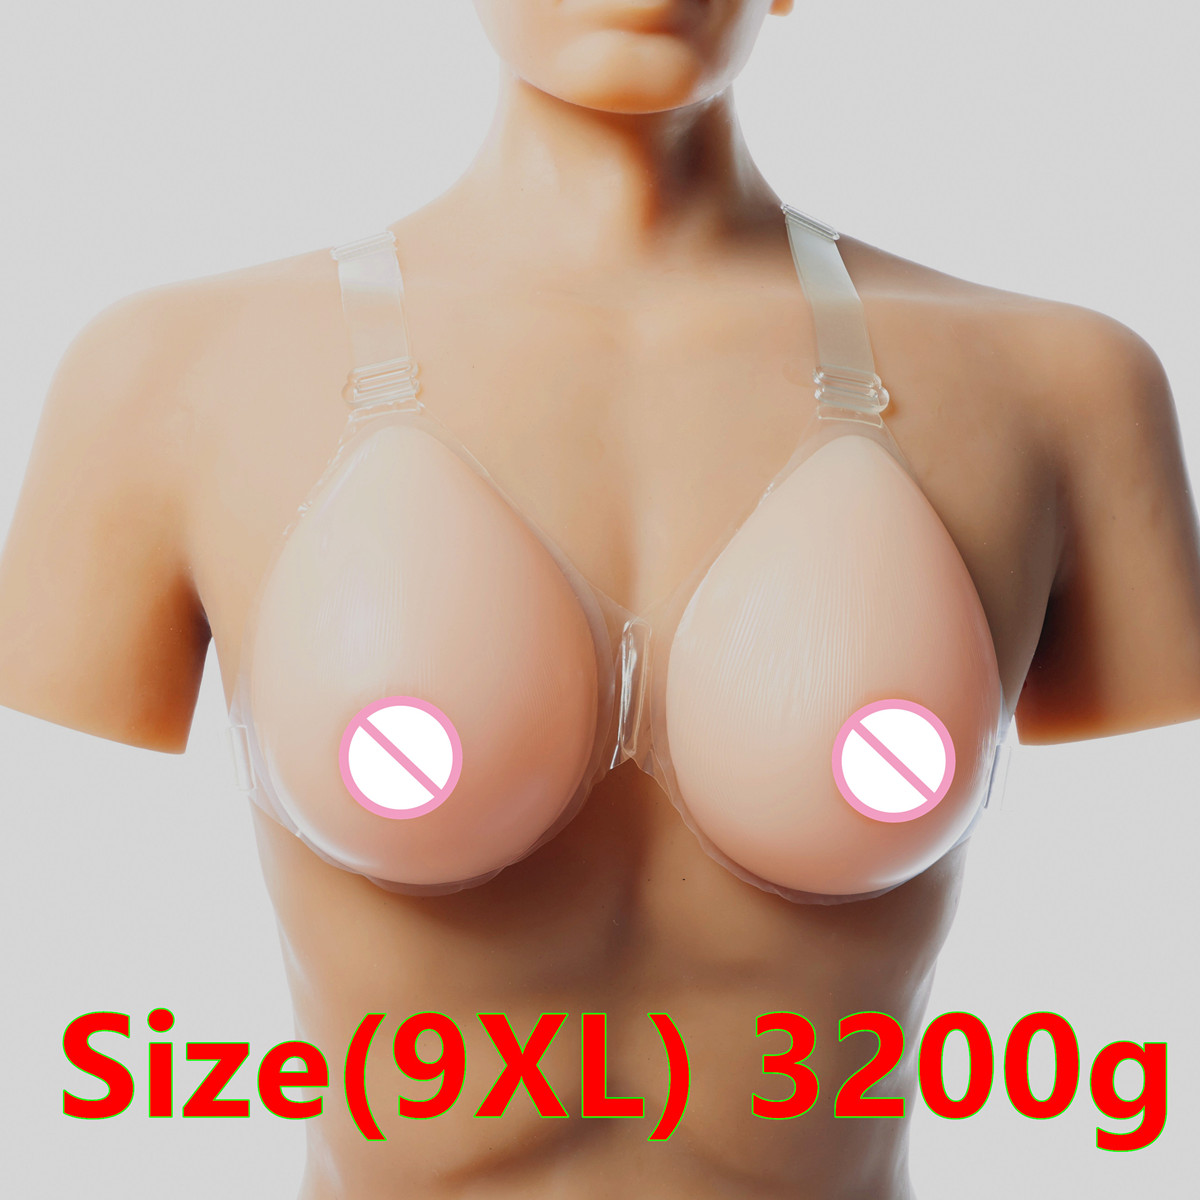 Drag Queen Breast 3200g/pair Transgender Silicone Breast Forms Artificial Breast False Boobs Realistic Breast Prosthesis цена